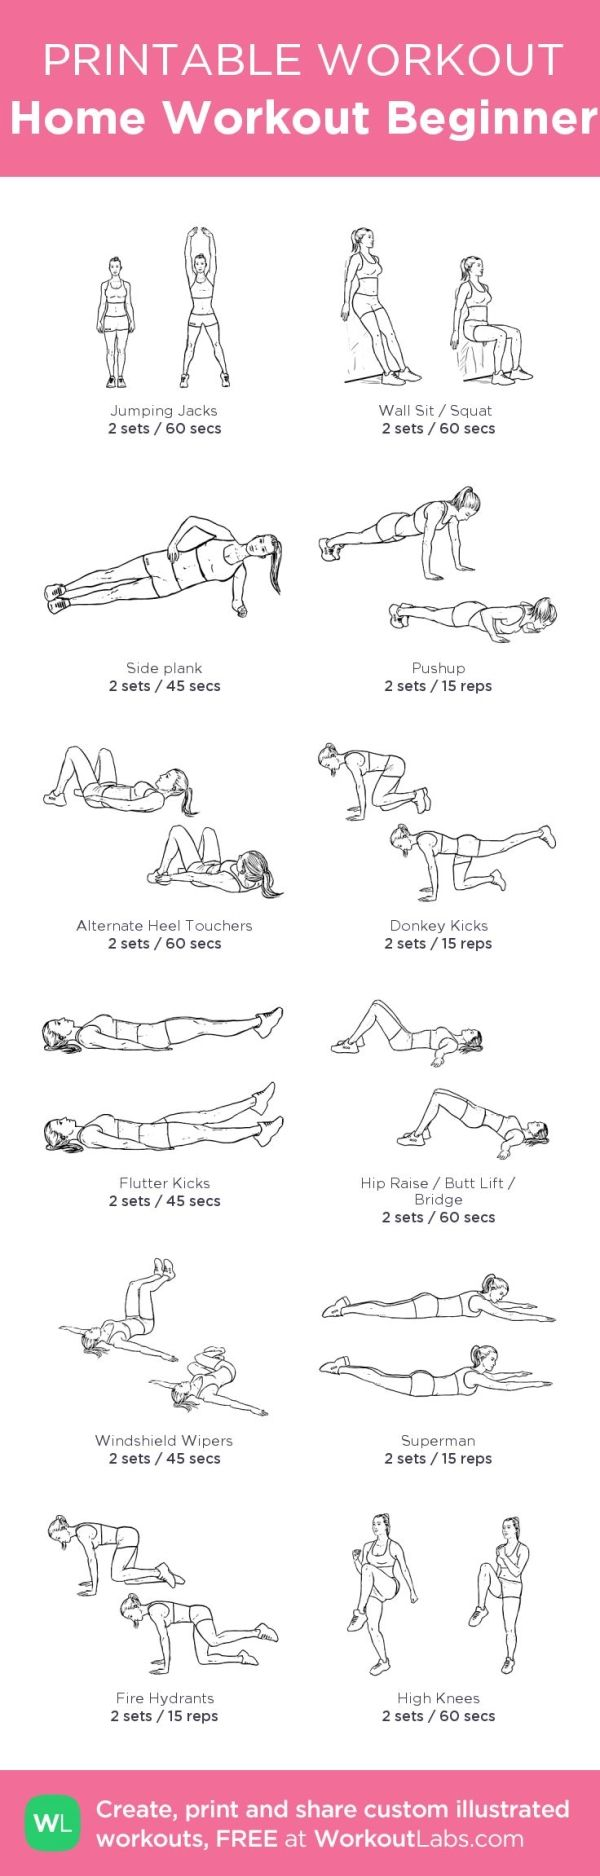 Printable Bodyweight Workouts | POPSUGAR Fitness